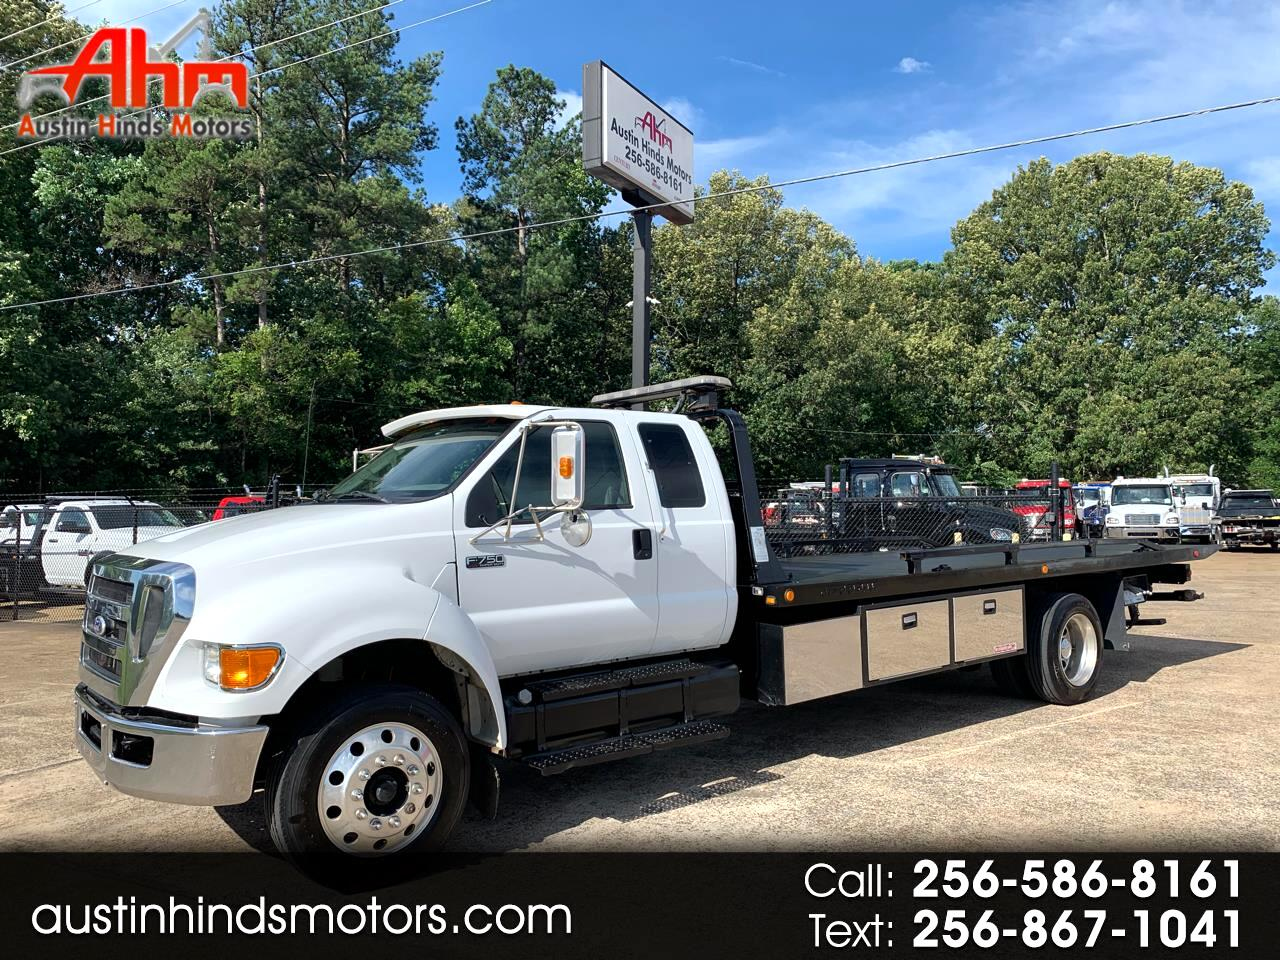 2010 Ford F-750 SuperCab 2WD DRW